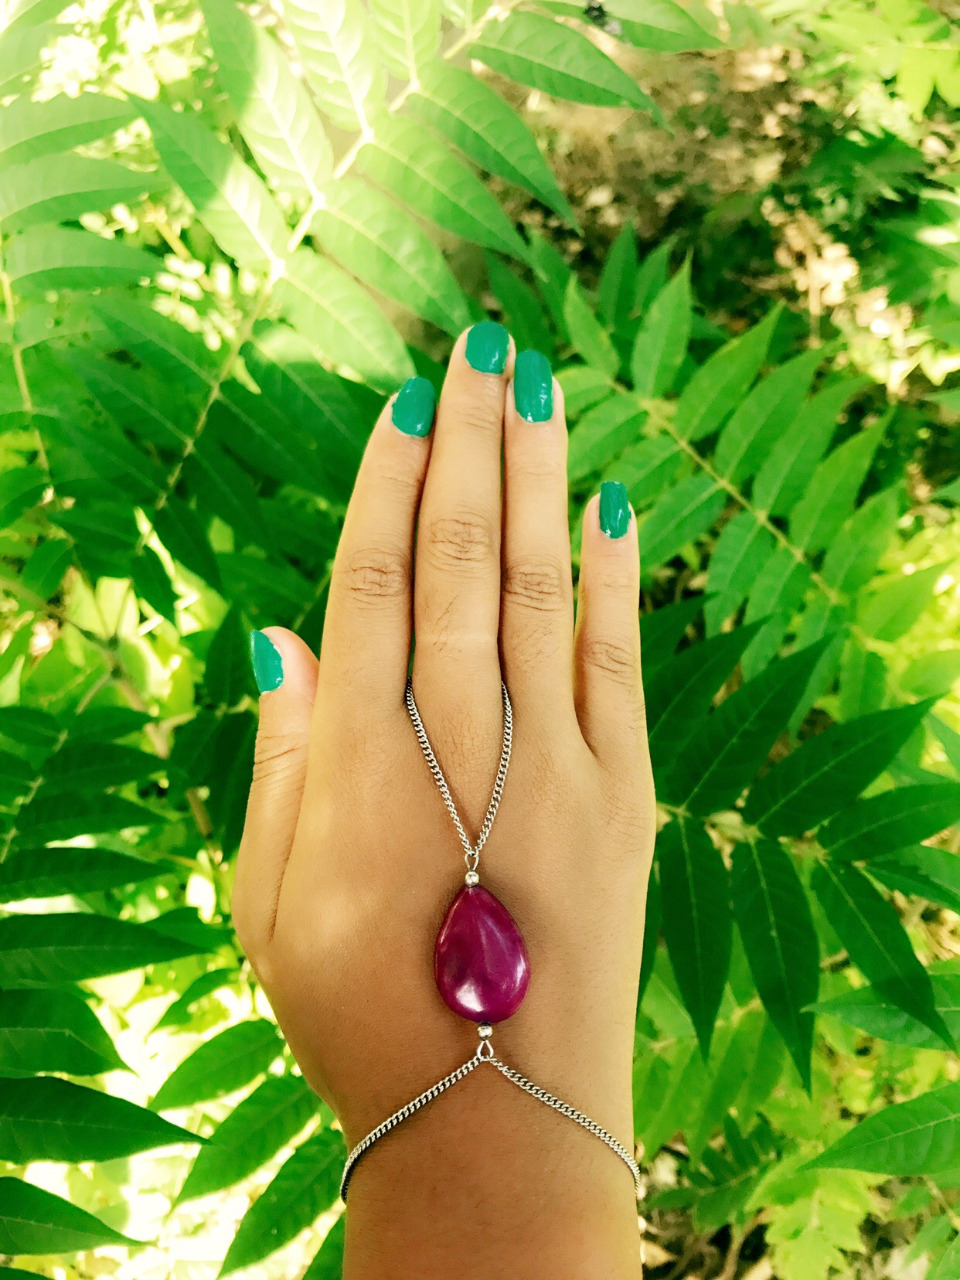 Bijou de main en acier inoxydable et pierre de Jade fushia-Hand jewel with gemstone